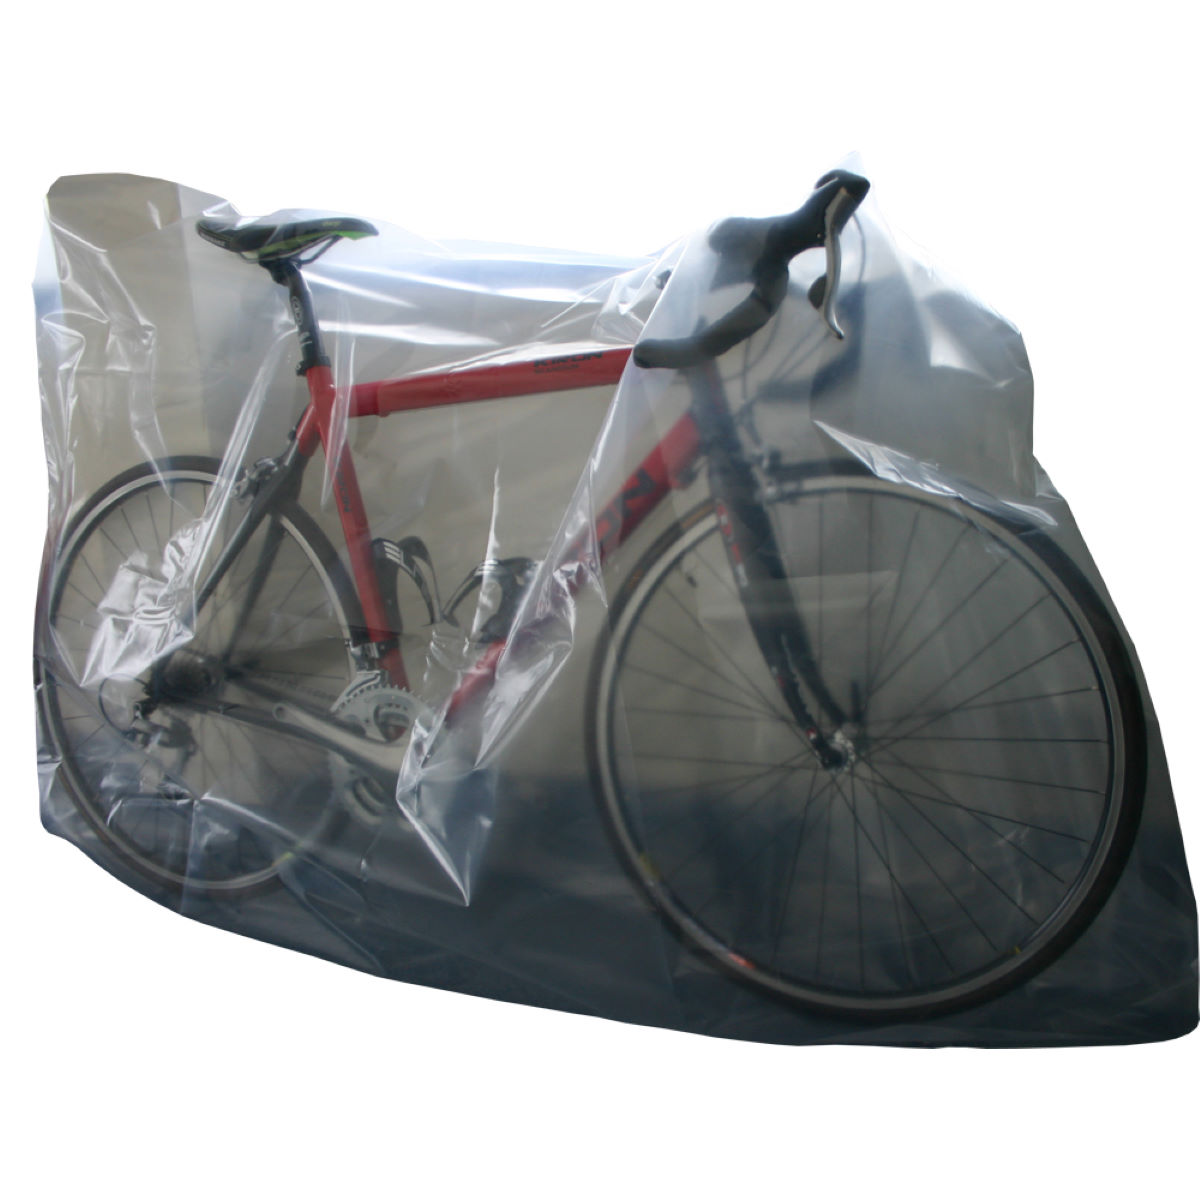 CTC Cycling UK Plastic Bike Bag